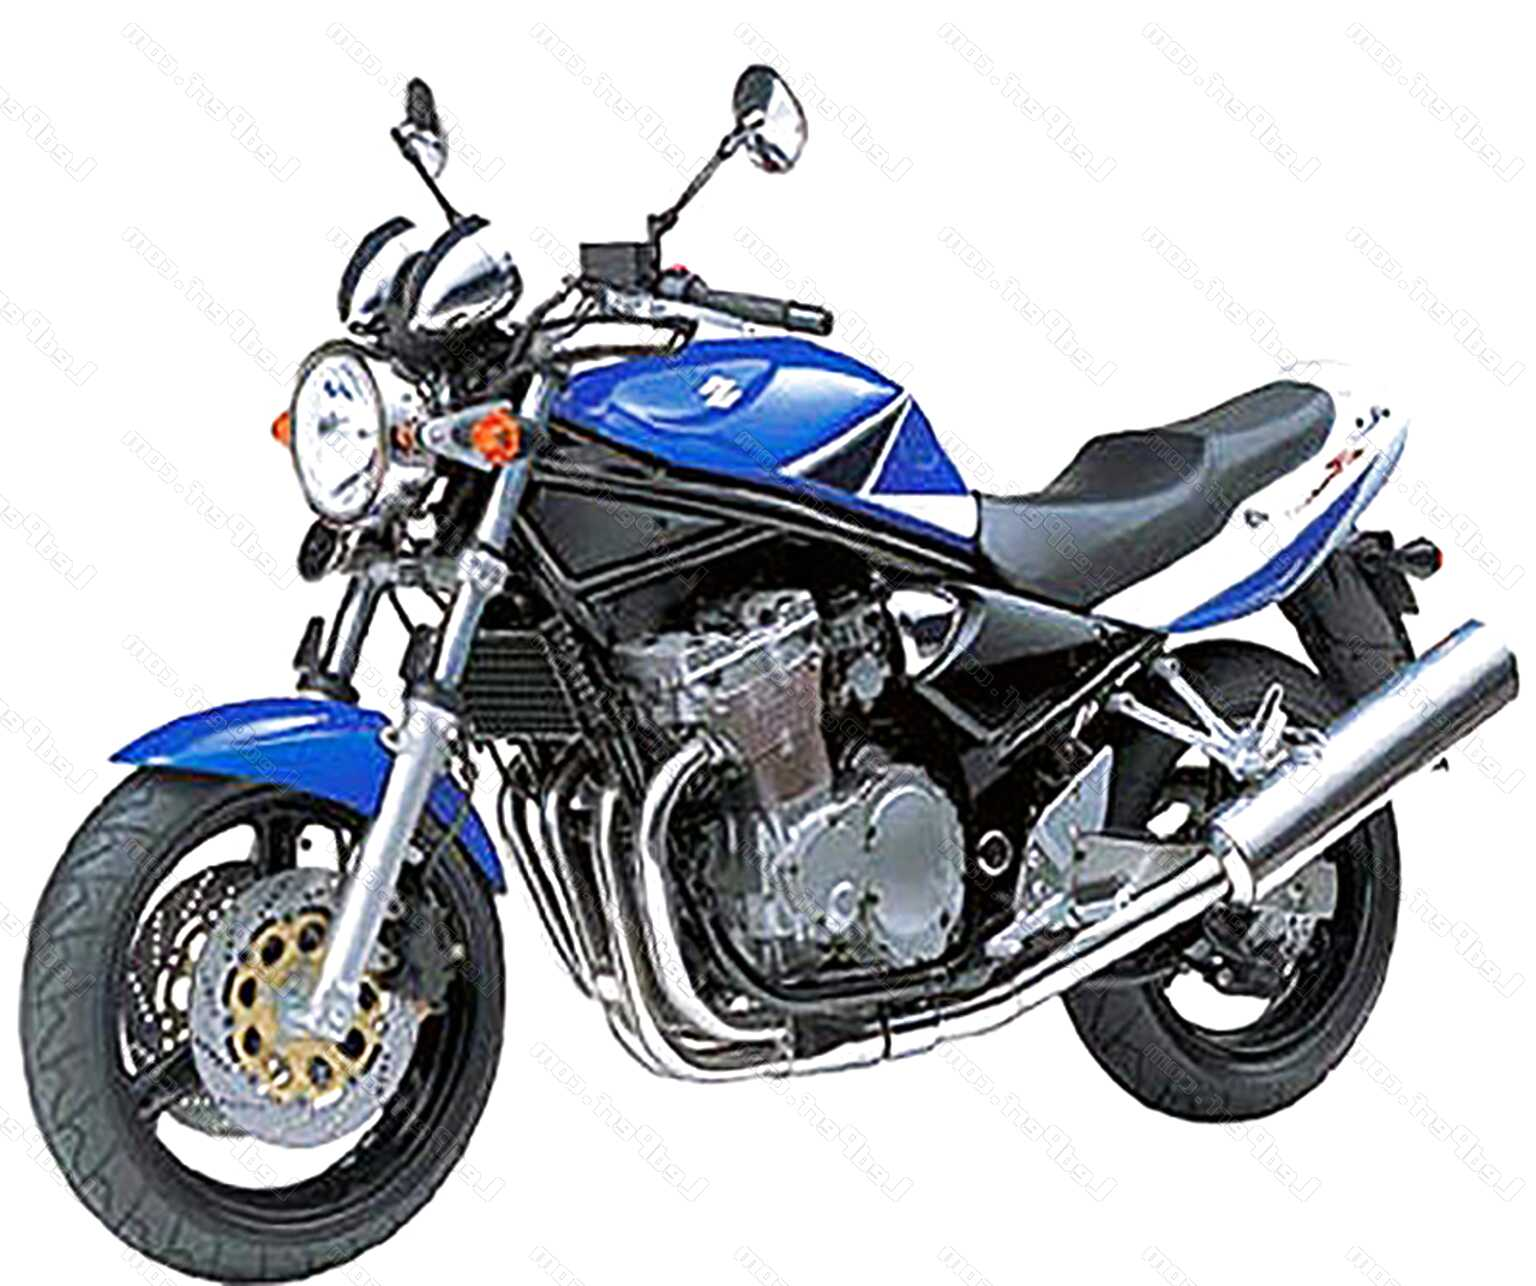 Bandit 600 For Sale In Uk 96 Second Hand Bandit 600